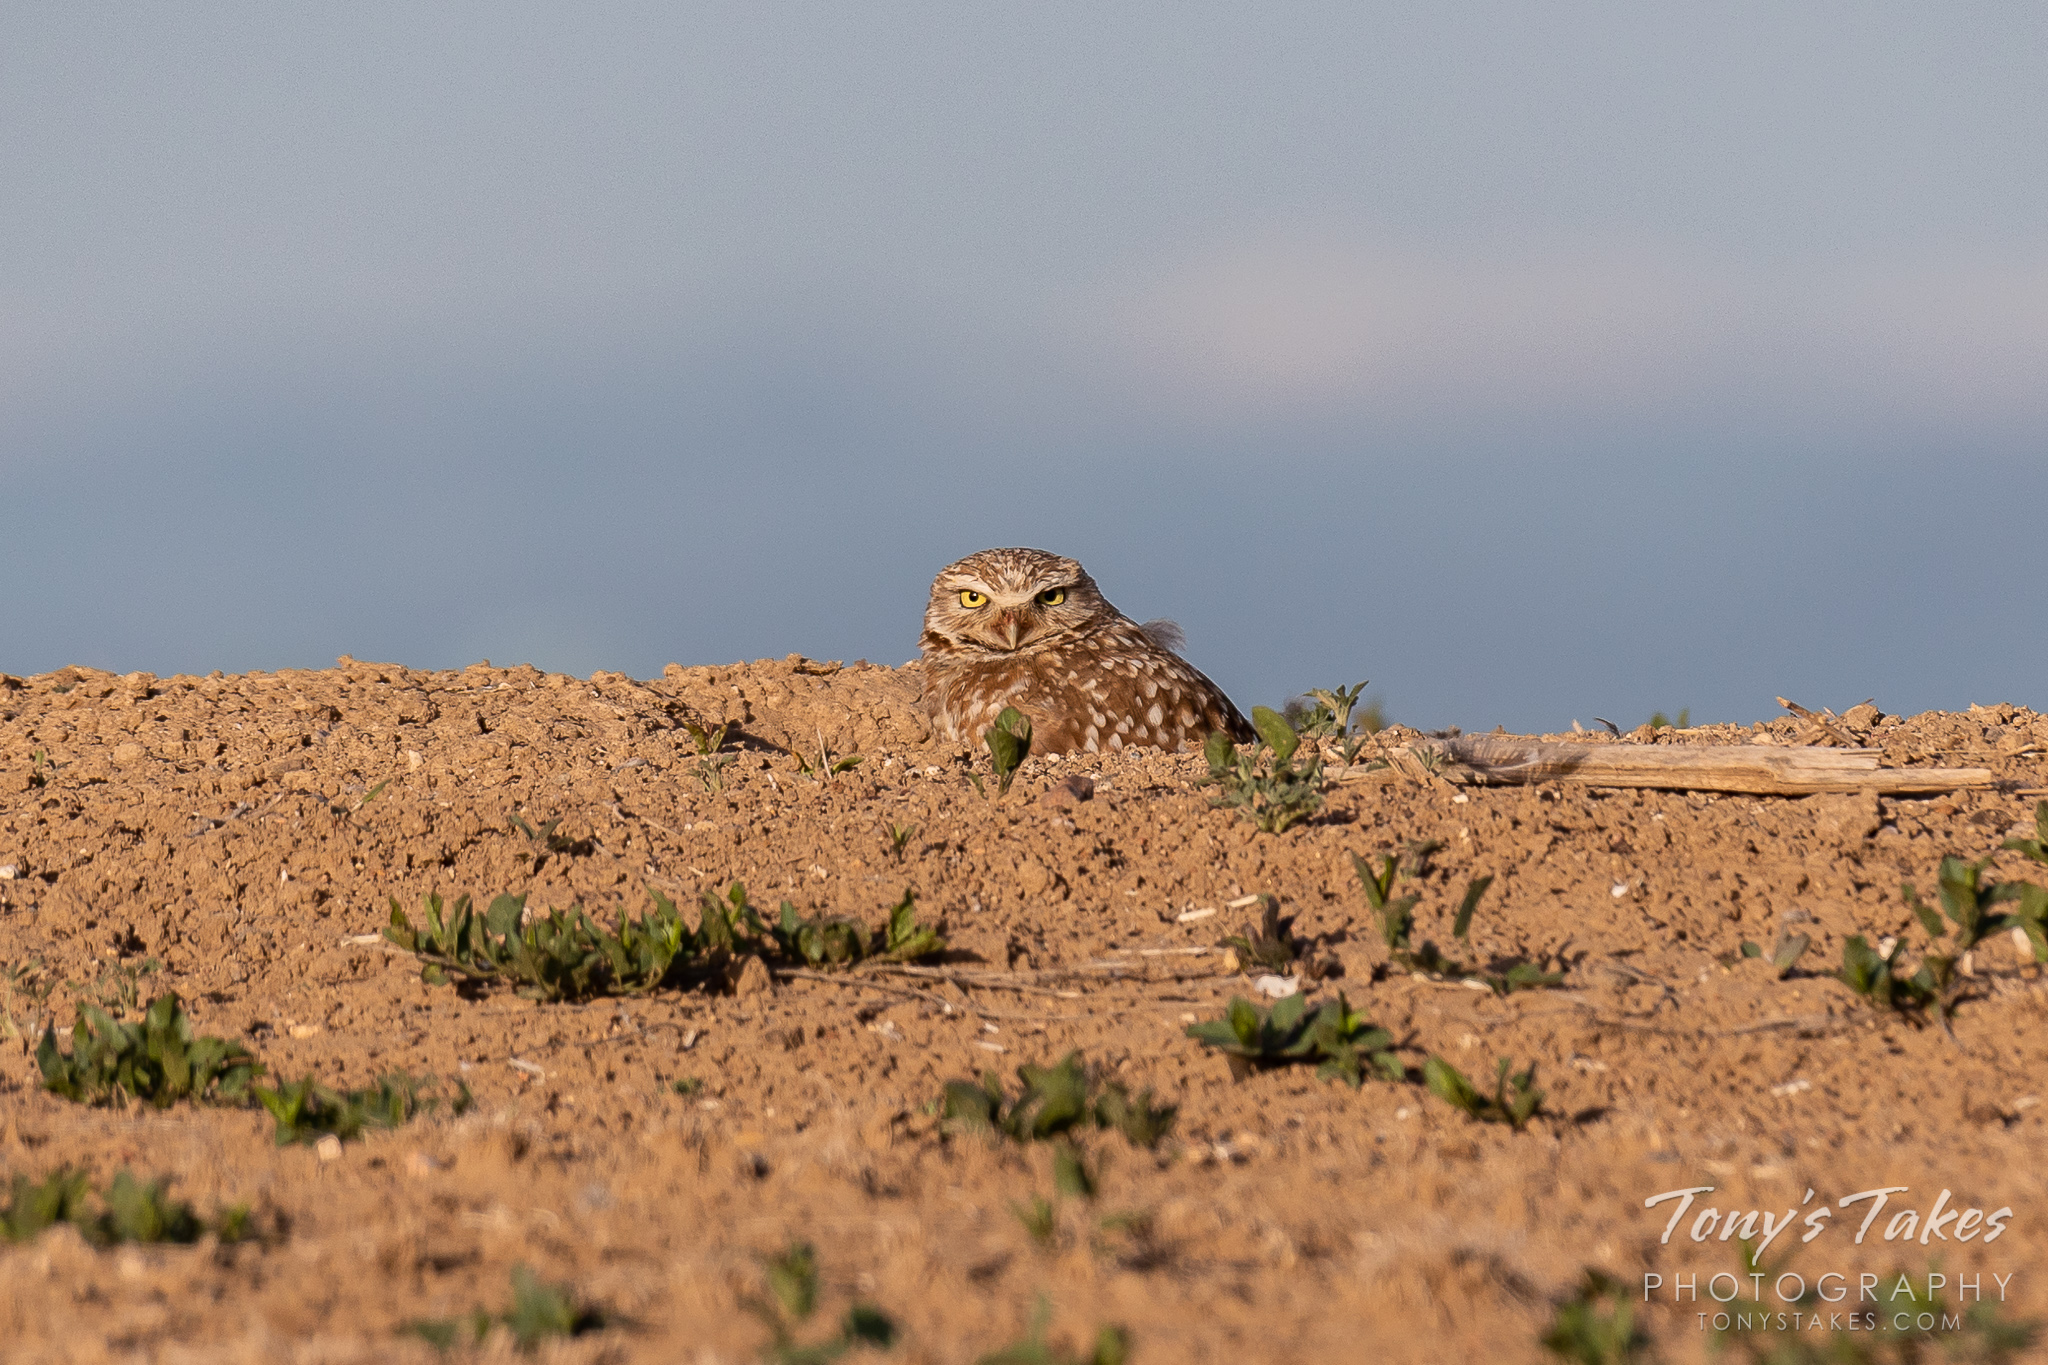 A burrowing owl hunkers down in its burrow and keeps close watch. (© Tony's Takes)